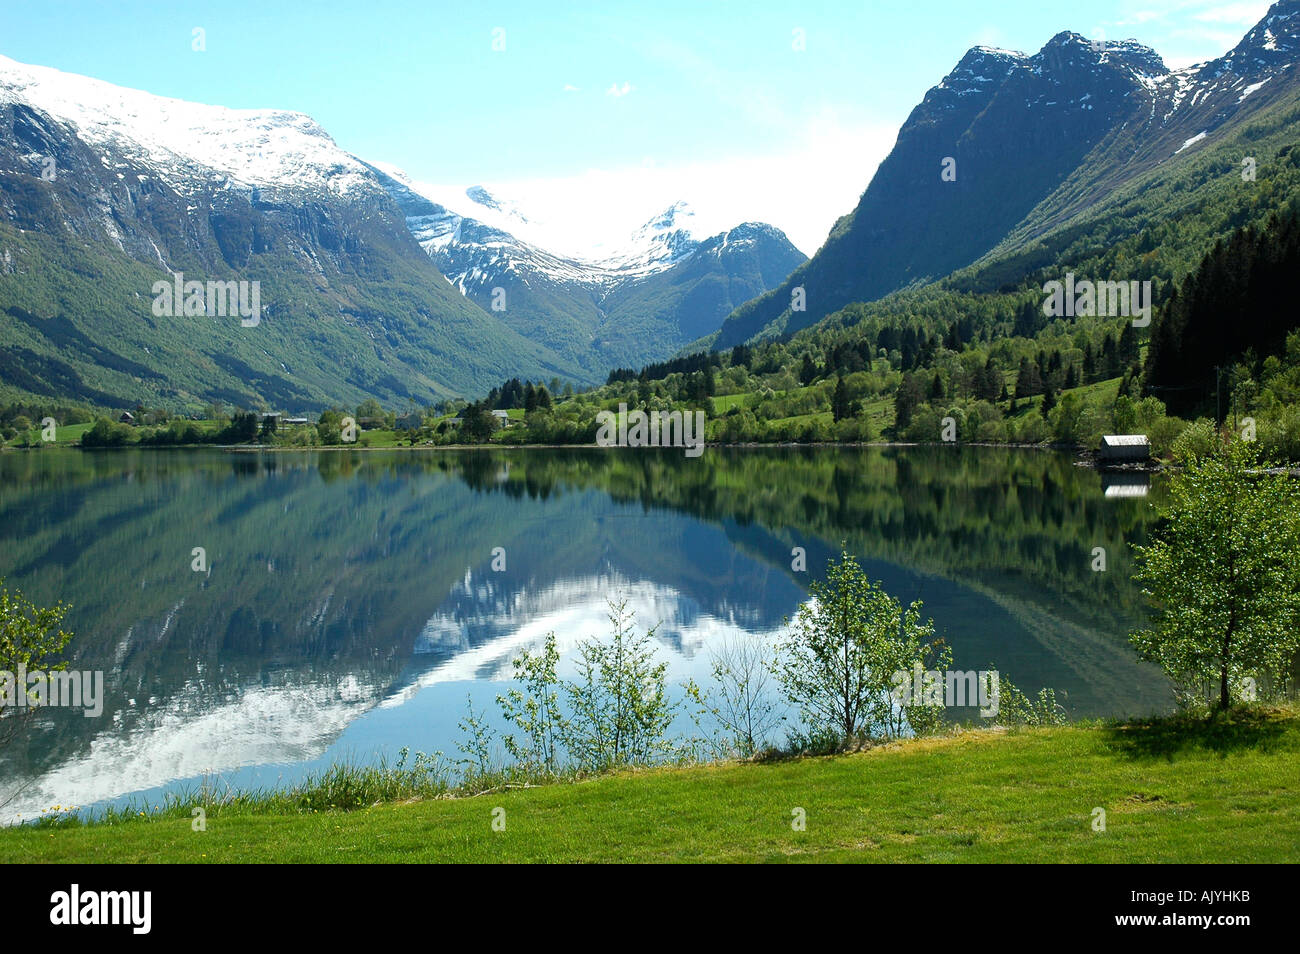 Reflections of mountains in Lake Olden, Norway - Stock Image